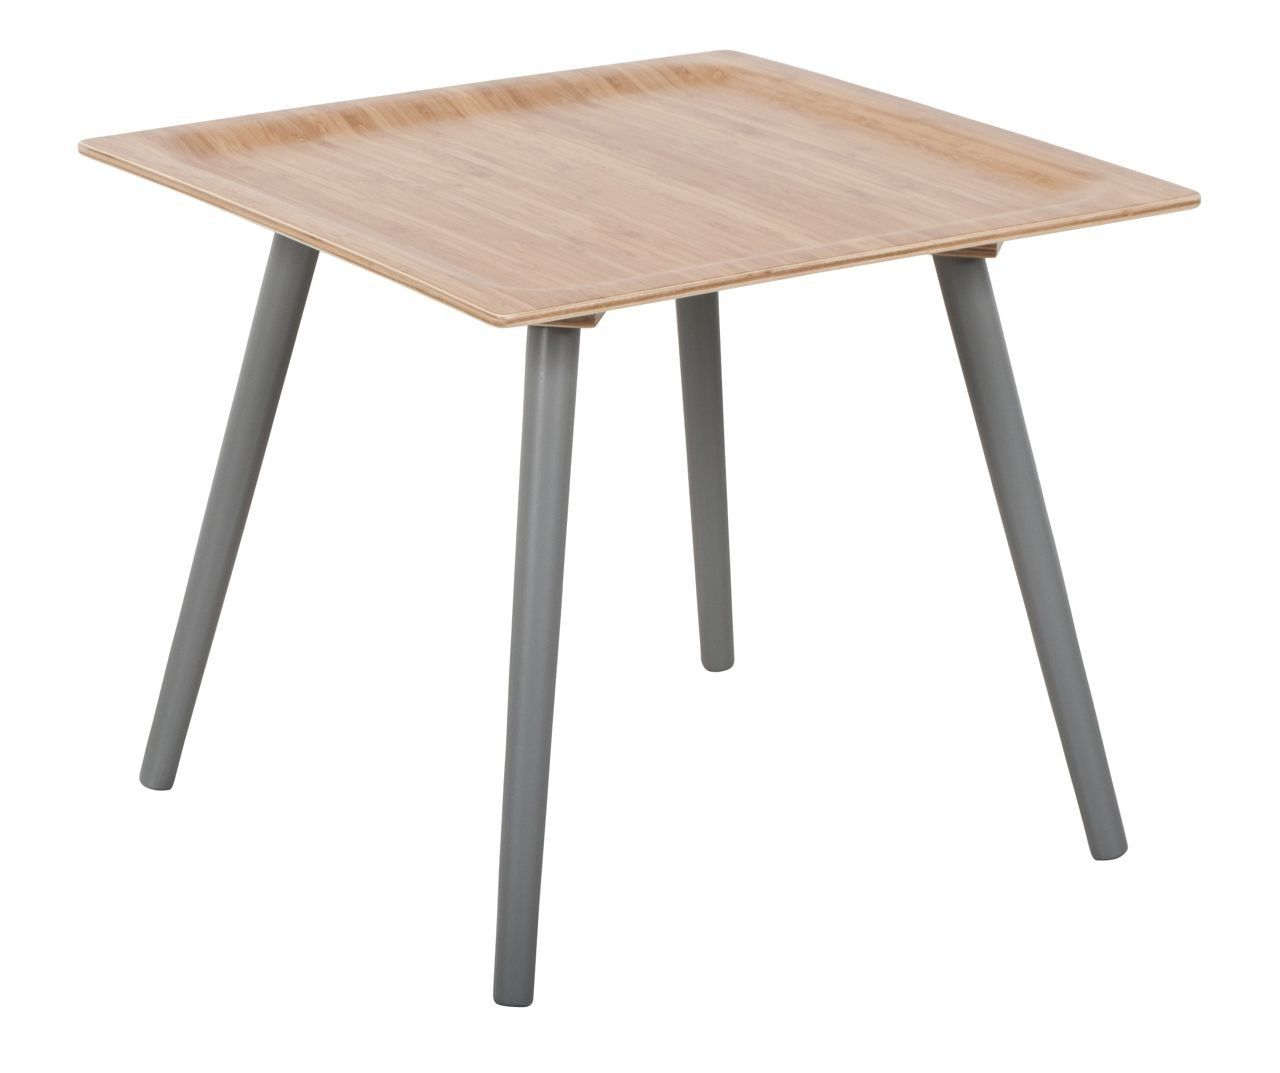 Bijzettafels! Side table Bamboo Warrior M cool grey by Zuiver at stealtheroom.com